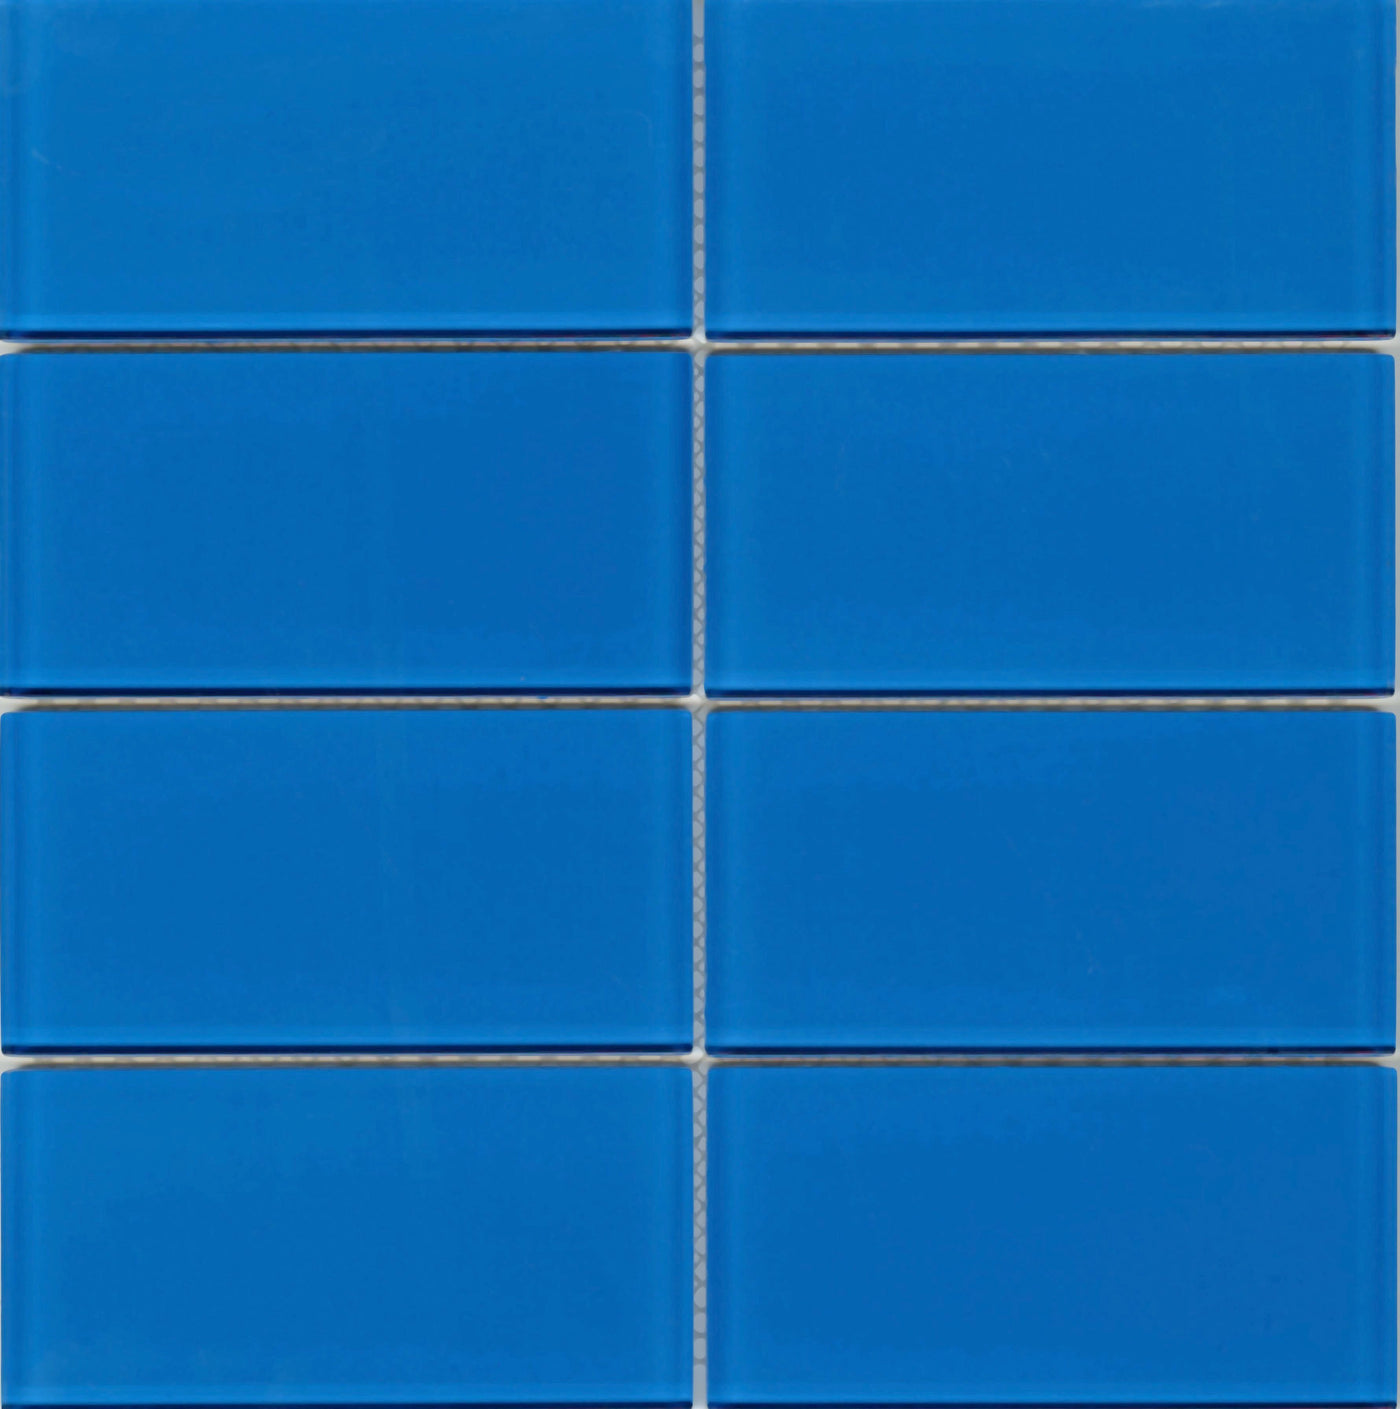 Modwalls Lush True Blue Glass Subway Tile 3x6 Tile Blue,White Kitchen Cabinets With Carrara Marble Countertops